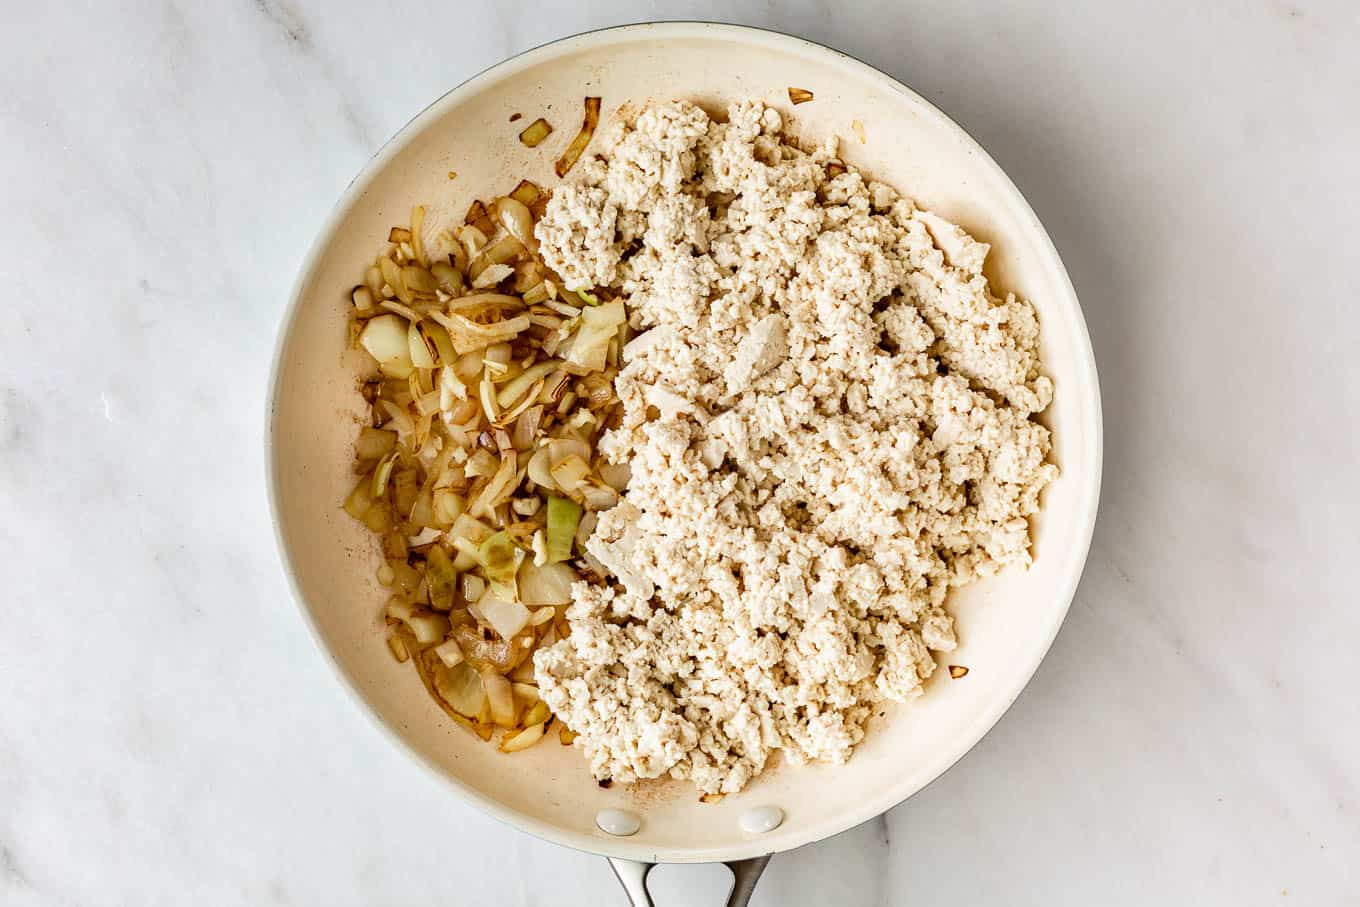 crumbled tofu, onions and garlic in a white pan